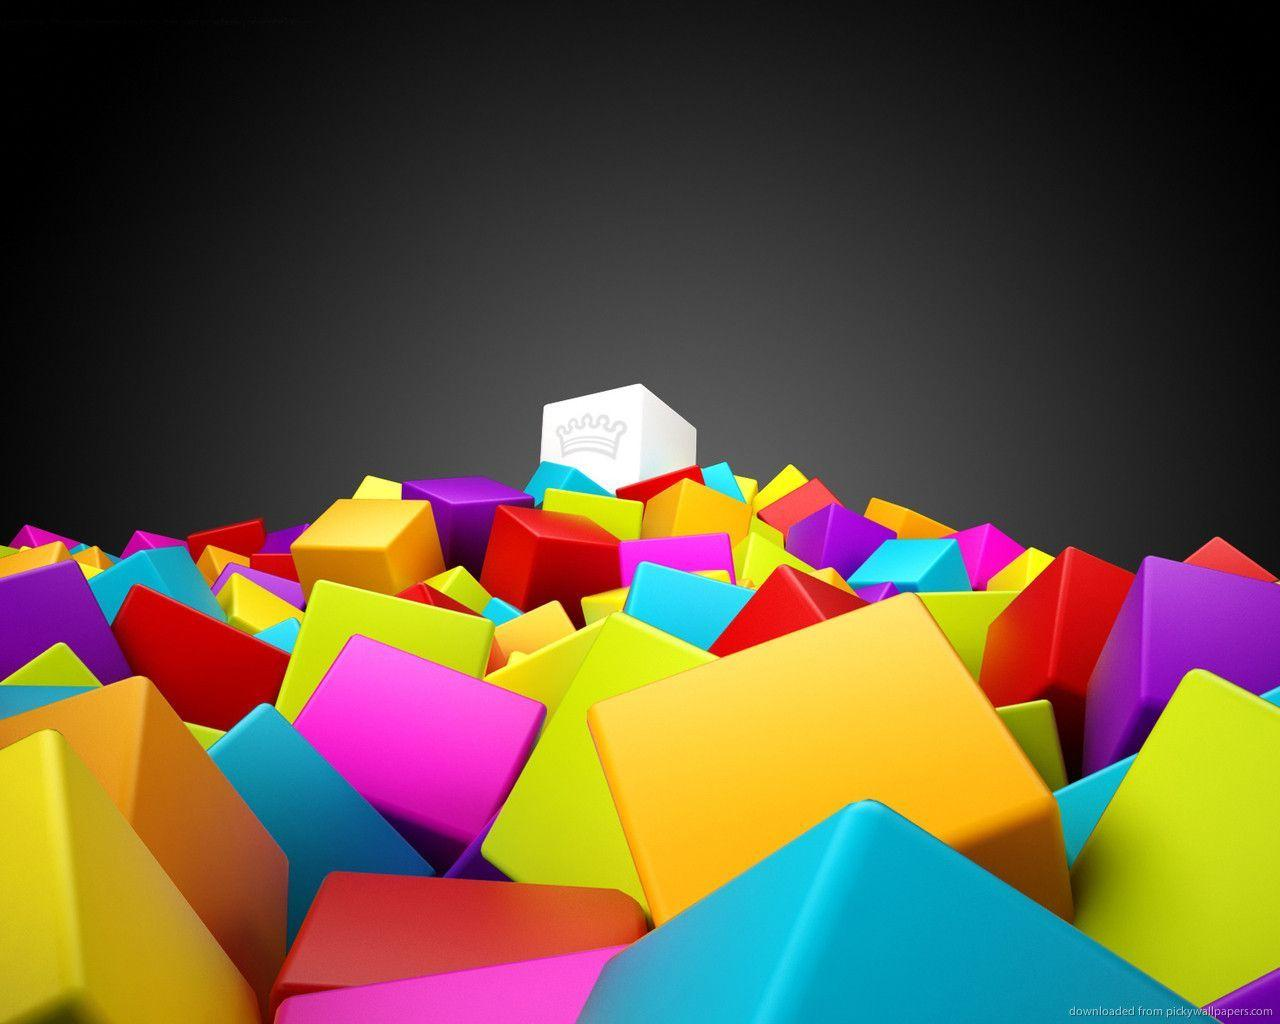 cool 3d colorful wallpaper love - photo #31